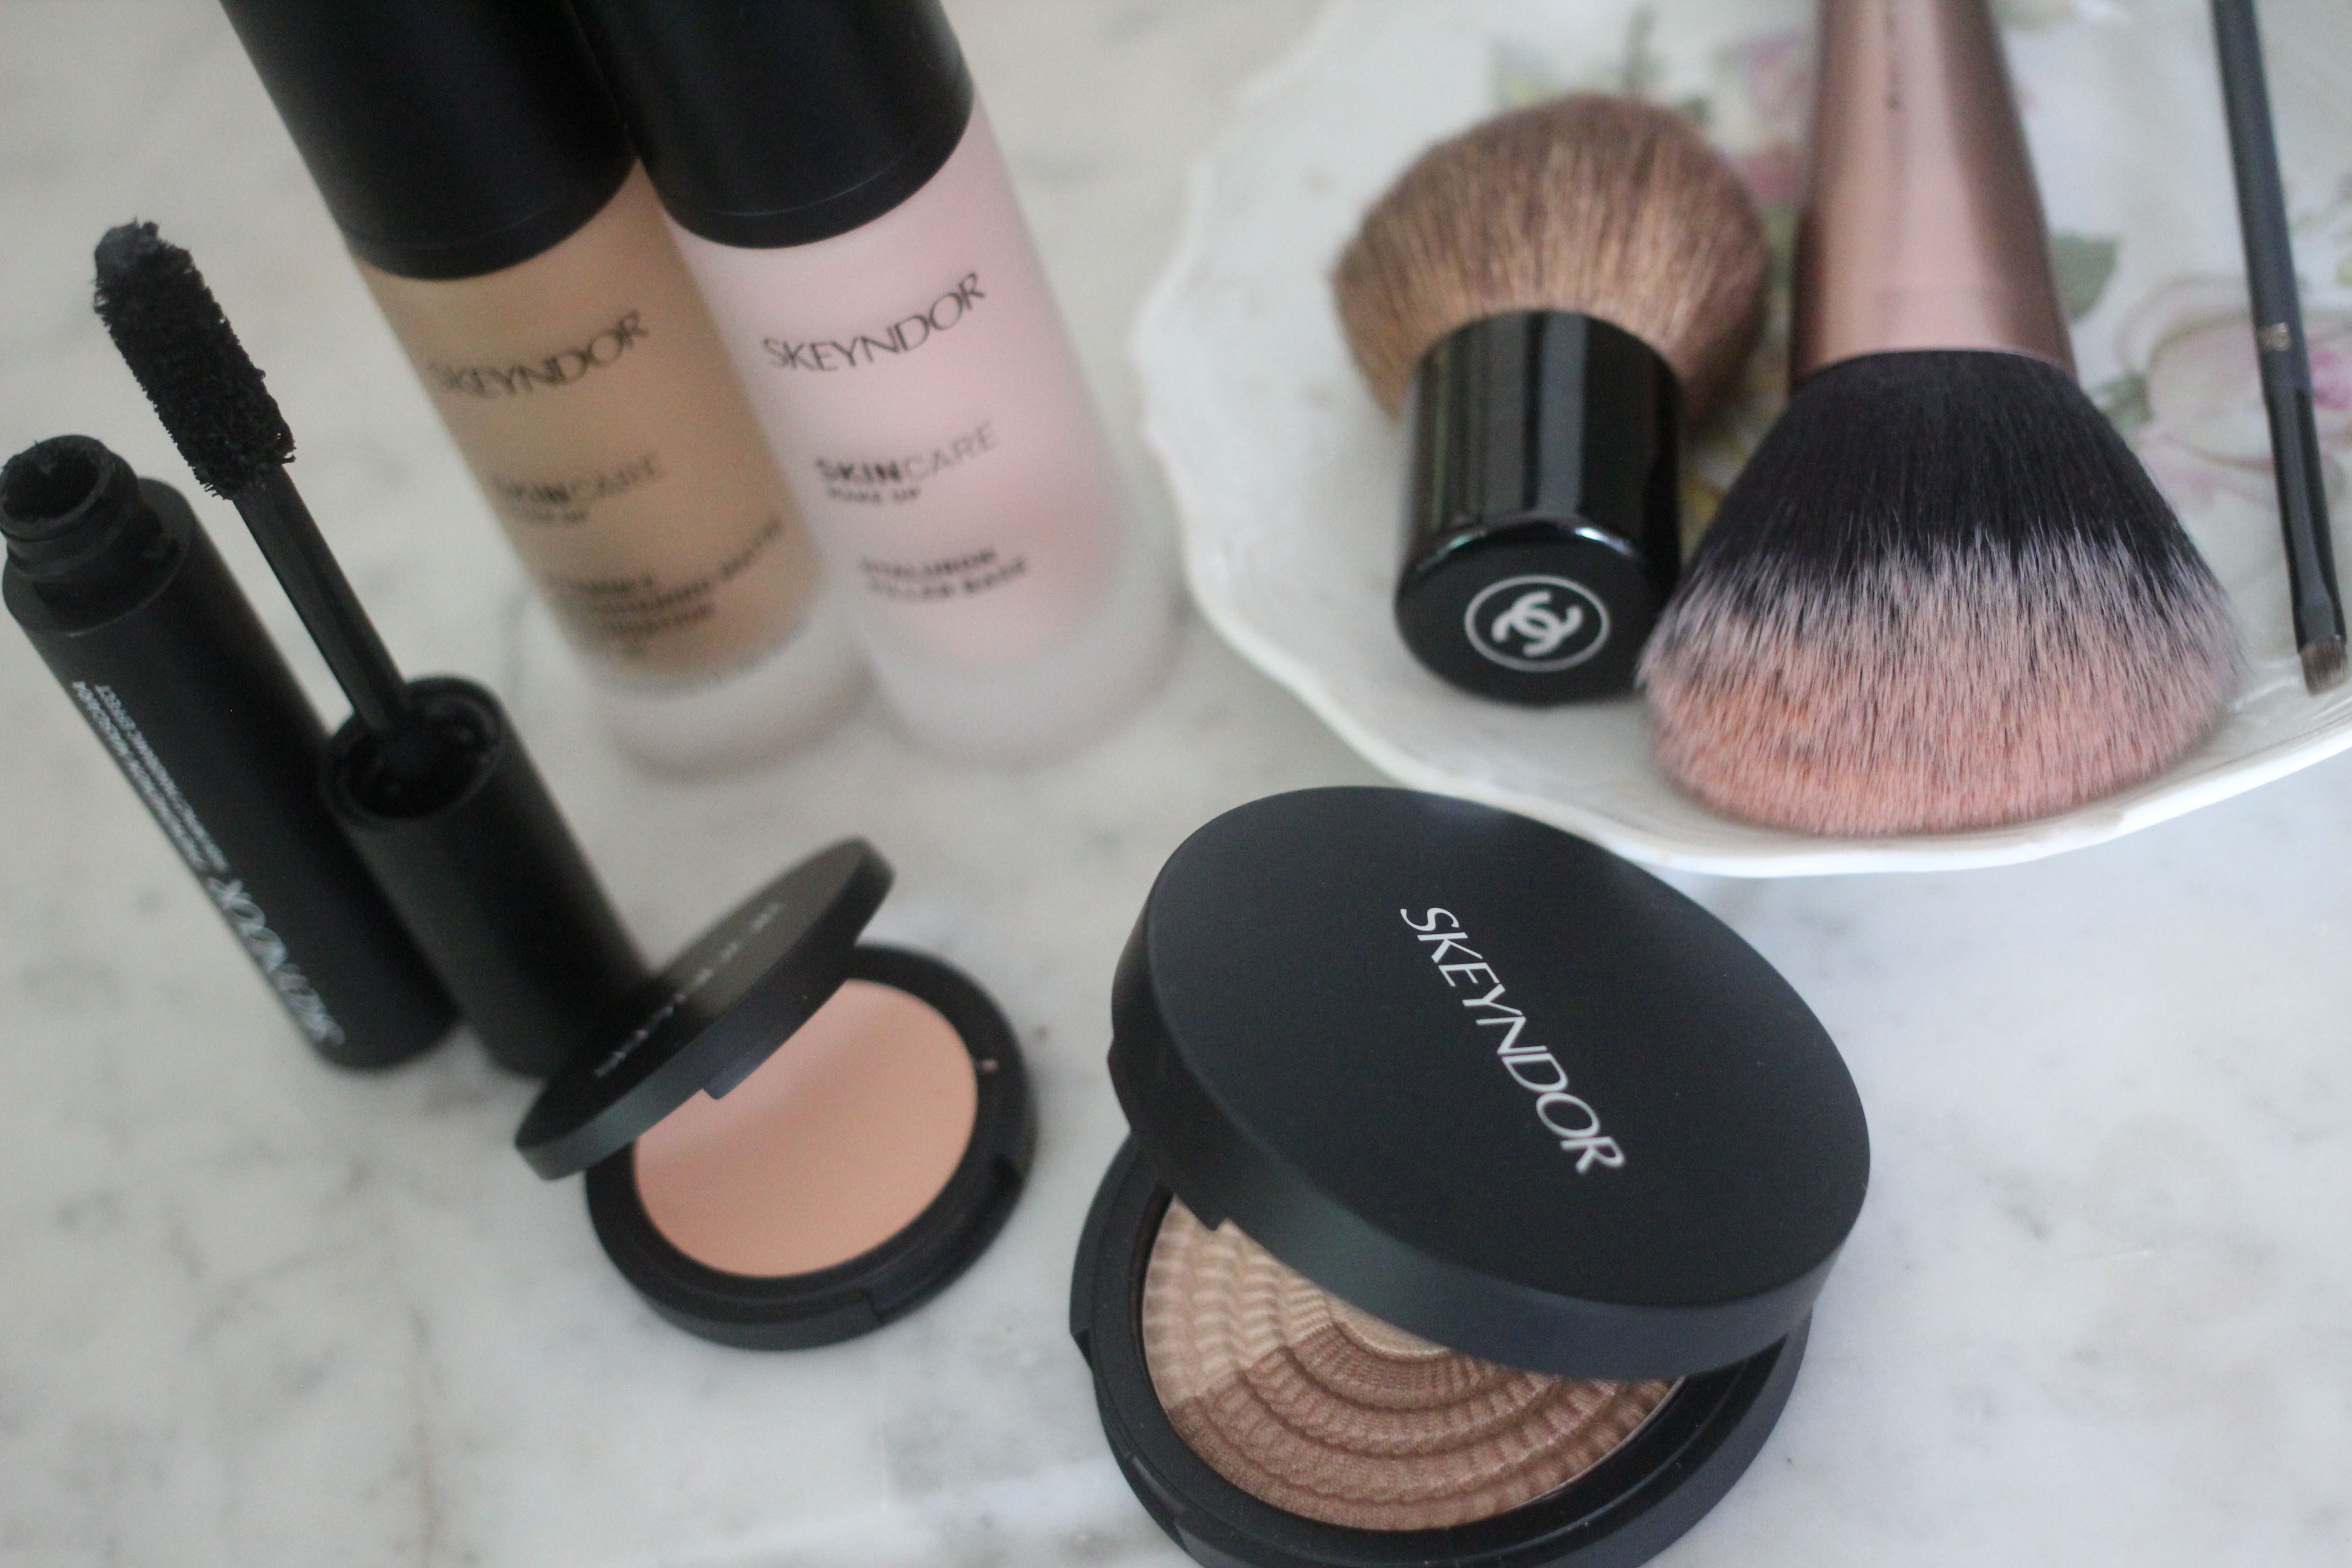 skeyndor SKINCARE MAKE UP